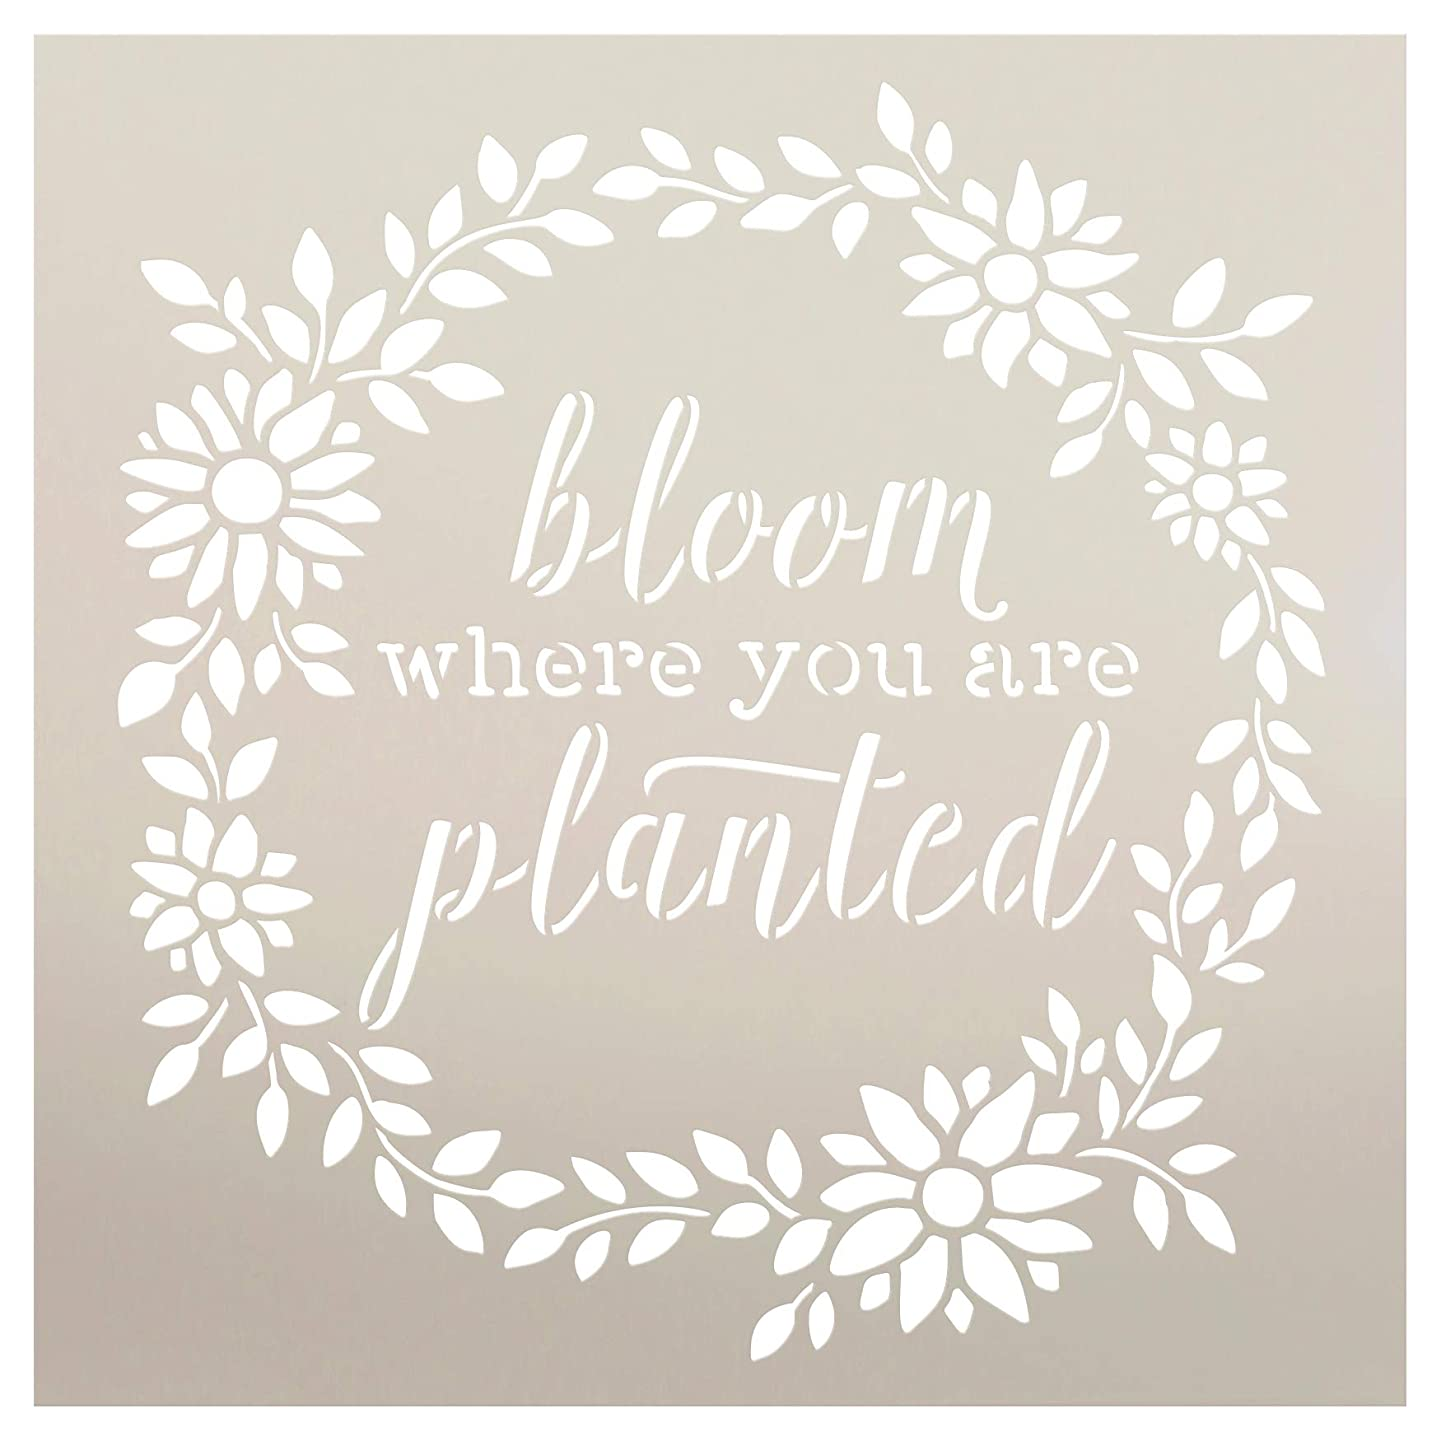 Bloom Where You are Planted Stencil by StudioR12 | Wood Signs | Word Art - Reusable Mylar Template | Painting Chalk Mixed Media | Use for Journaling, DIY Home - Choose Size (9